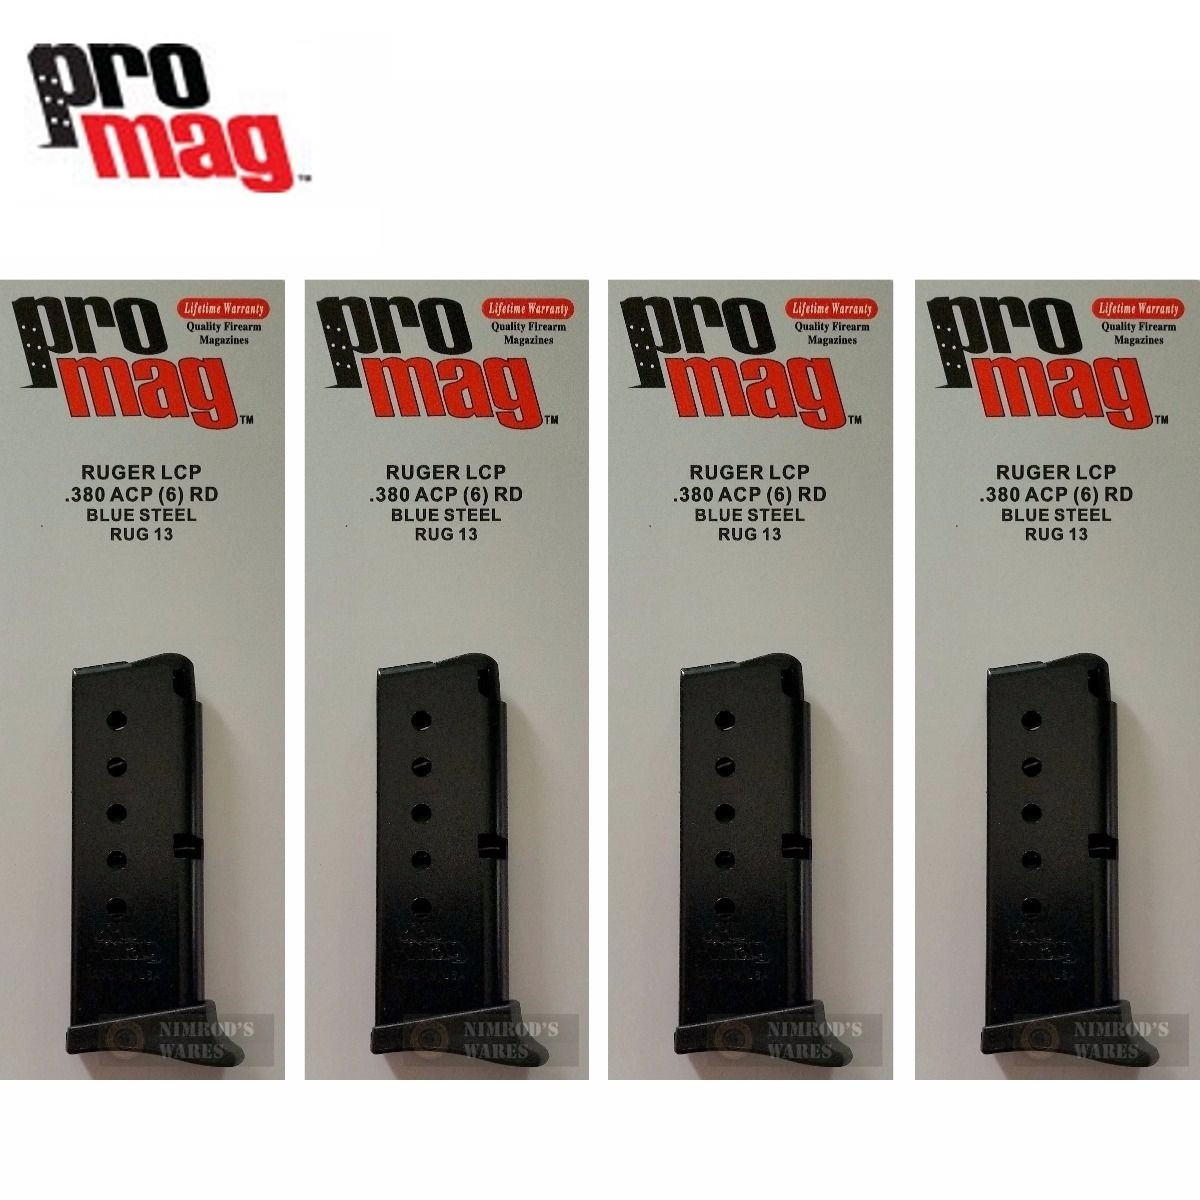 ProMag RUGER LCP  380 ACP 6 Round MAGAZINE 4-PACK RUG13 Steel